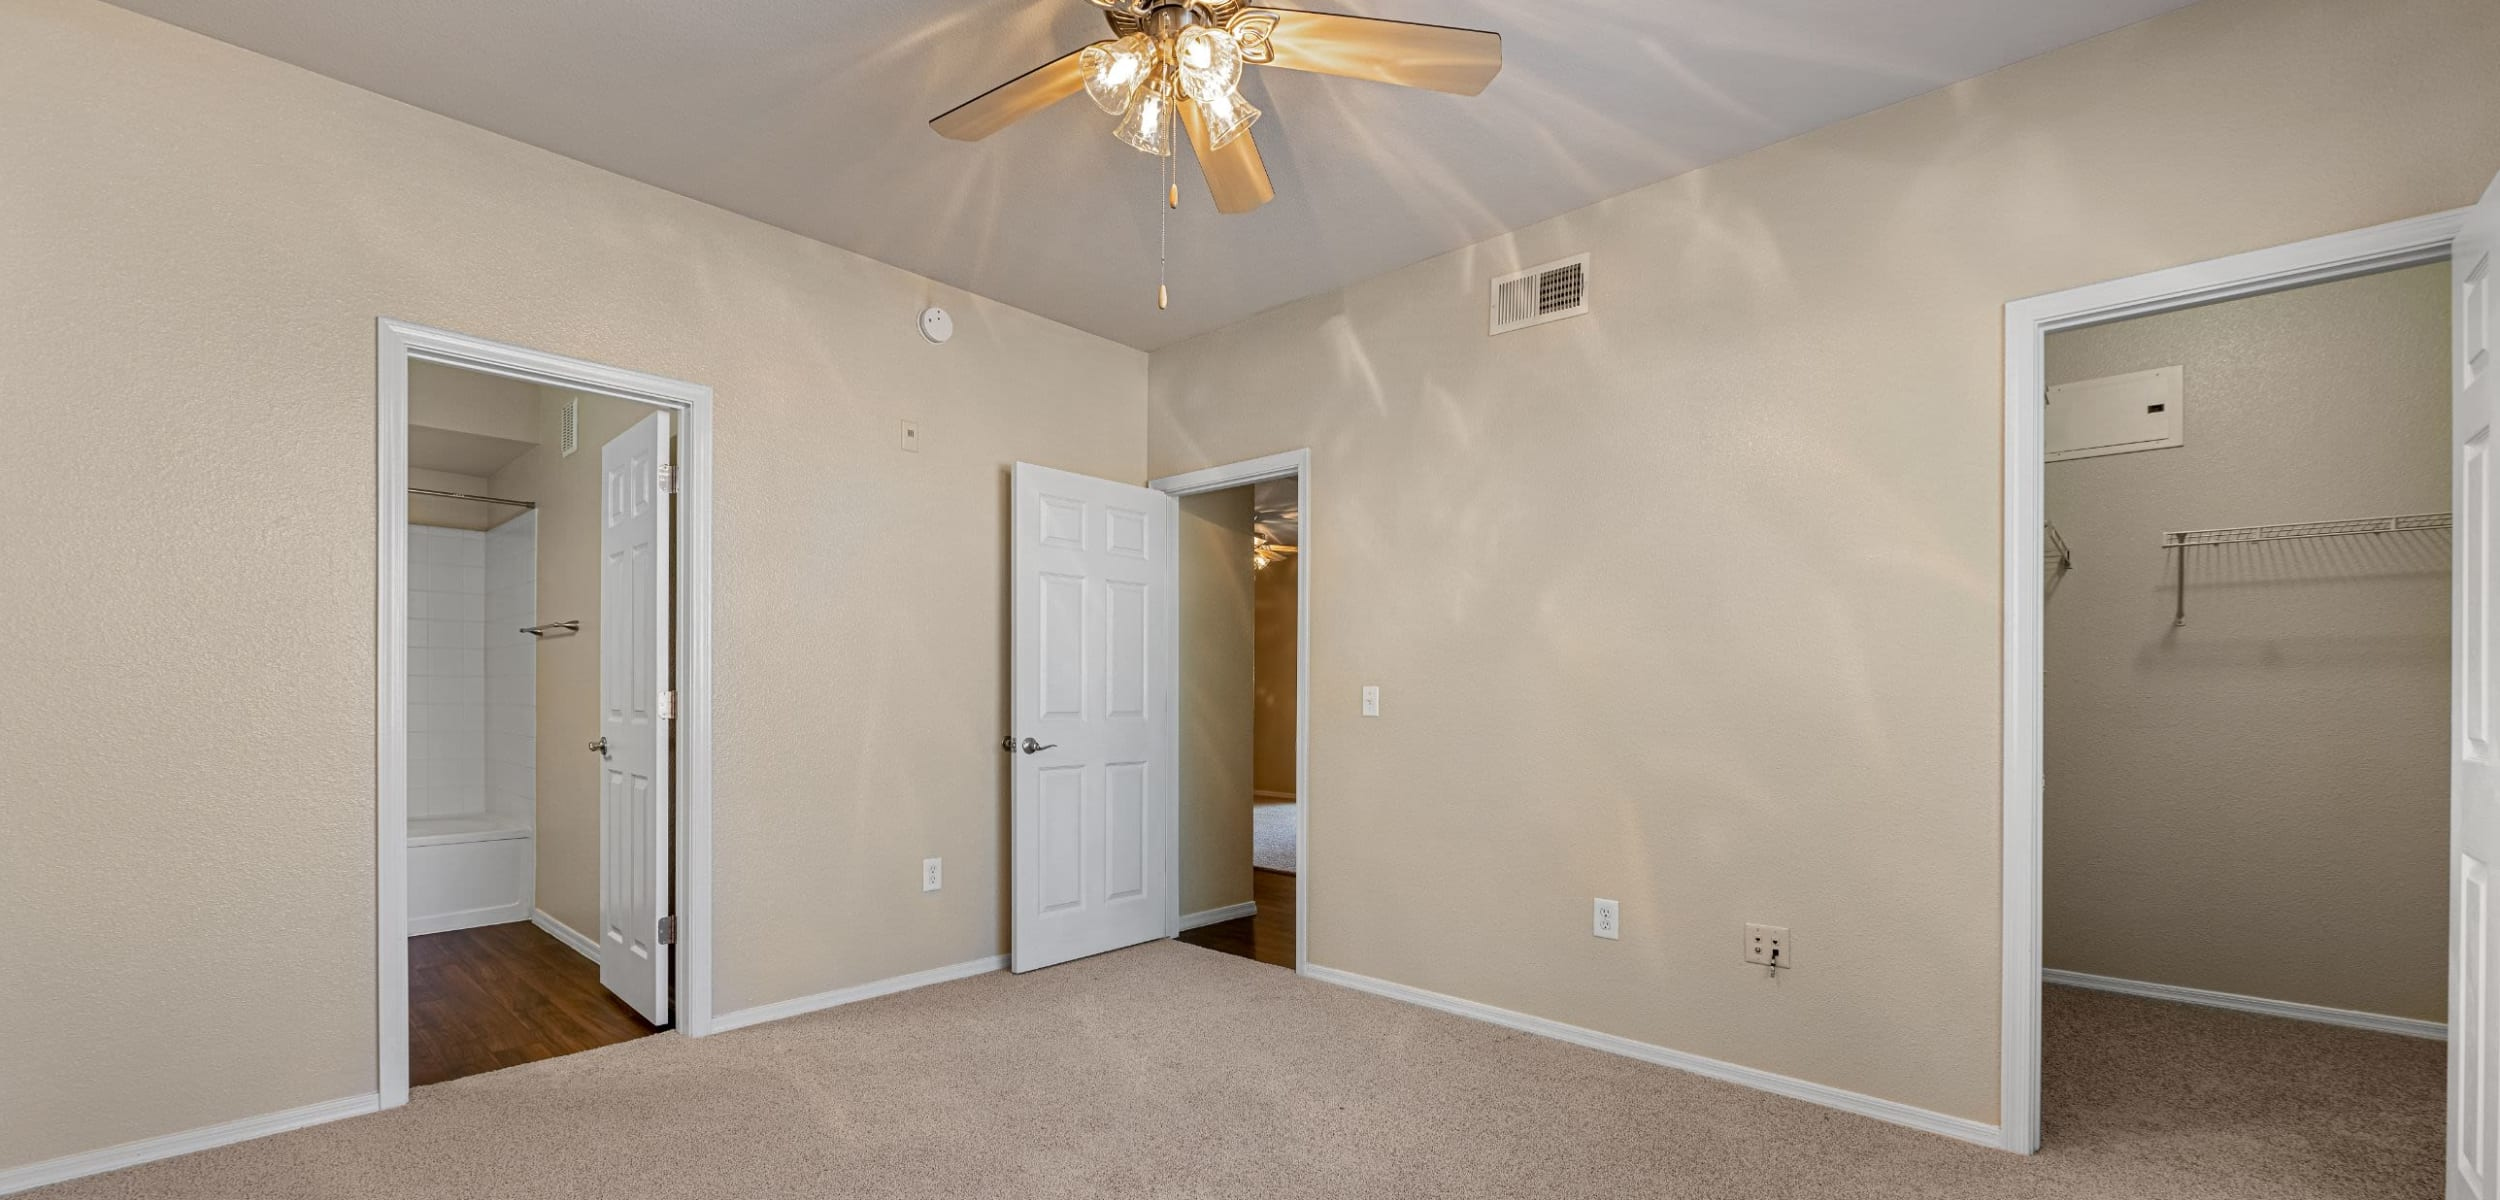 Bedroom with ceiling fan at Azure Creek in Cave Creek, Arizona